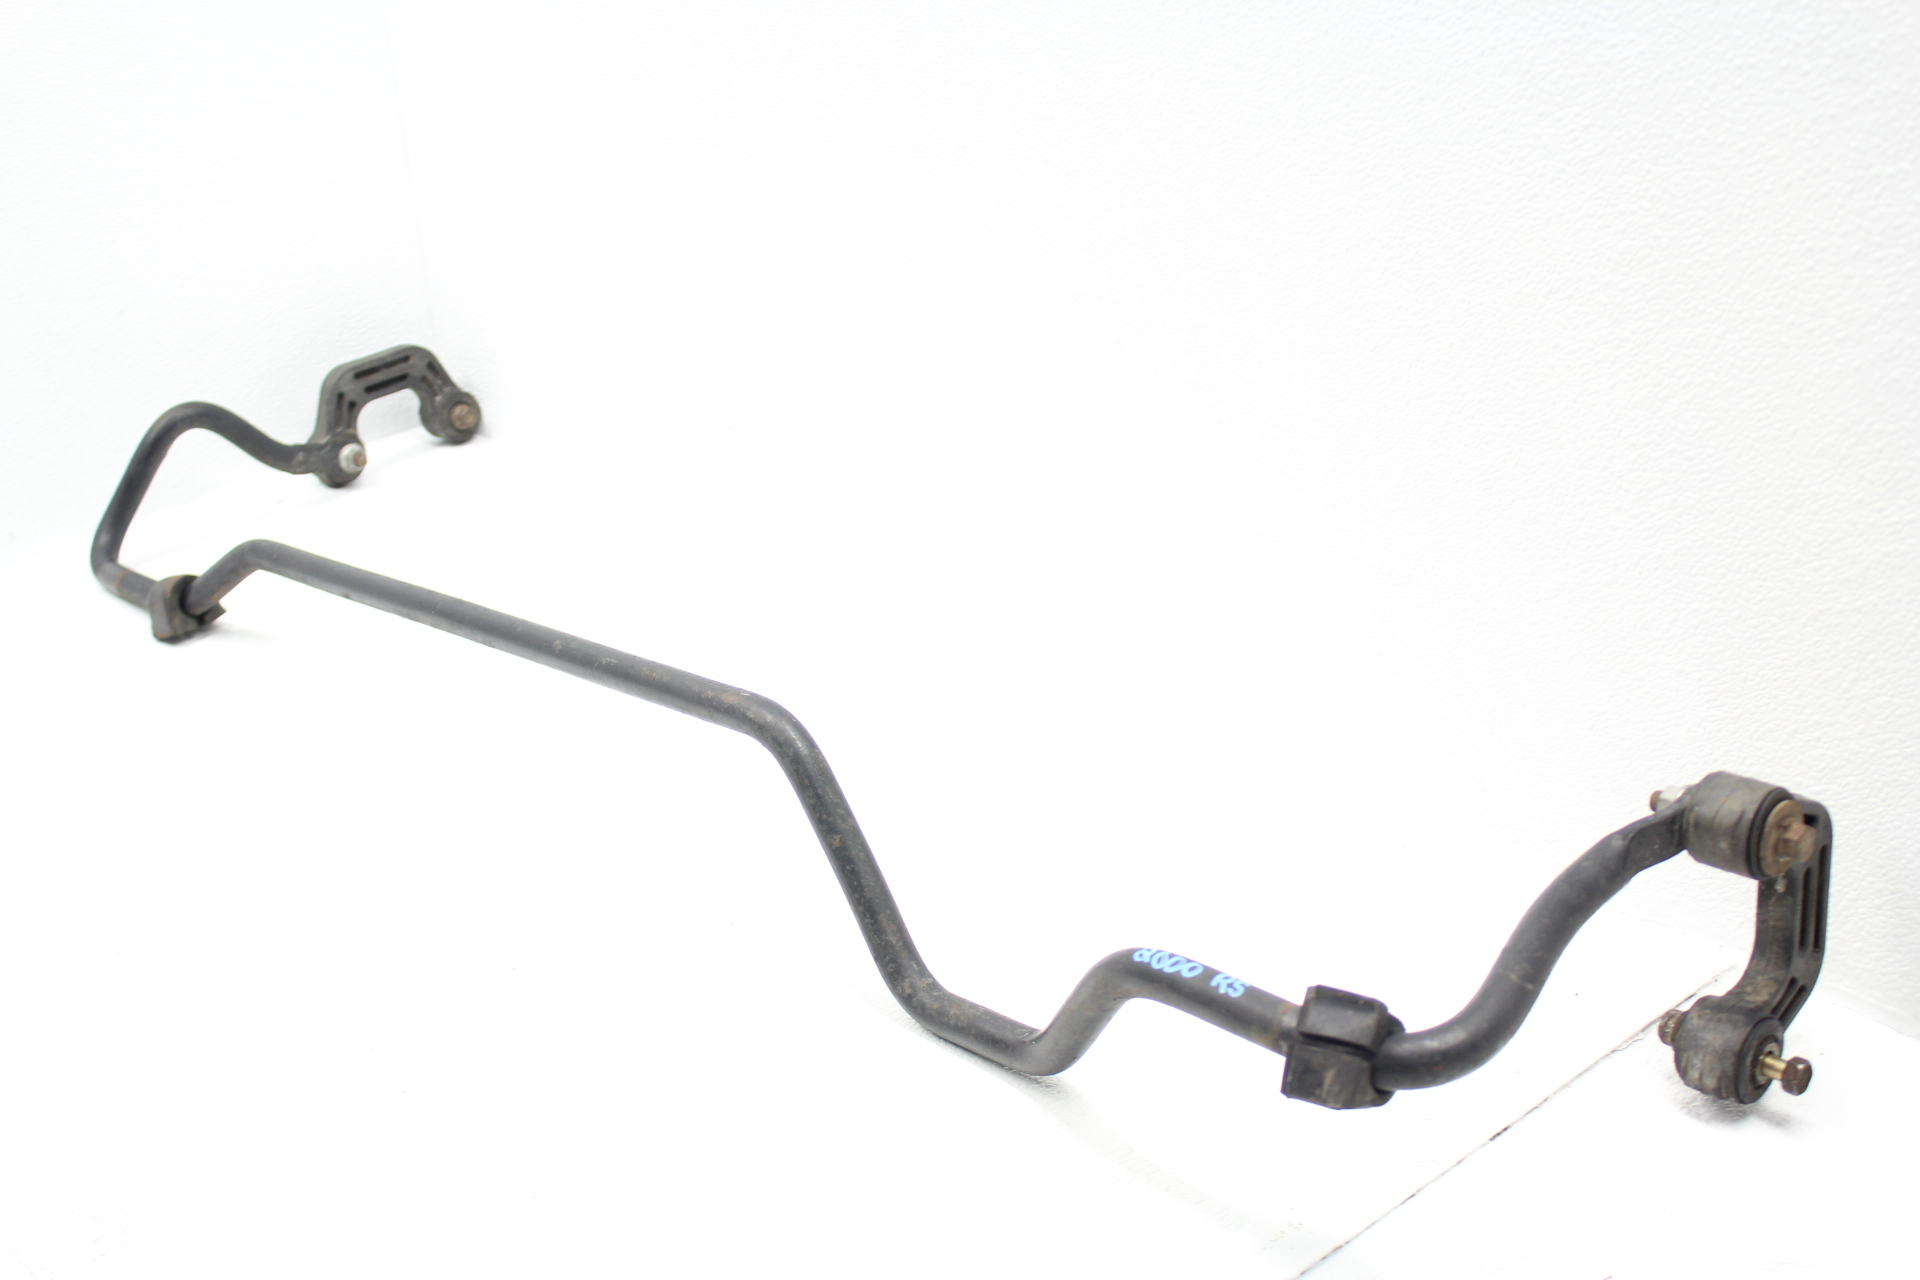 1998-2001 SUBARU IMPREZA 2.5 RS GC8 REAR SWAY BAR